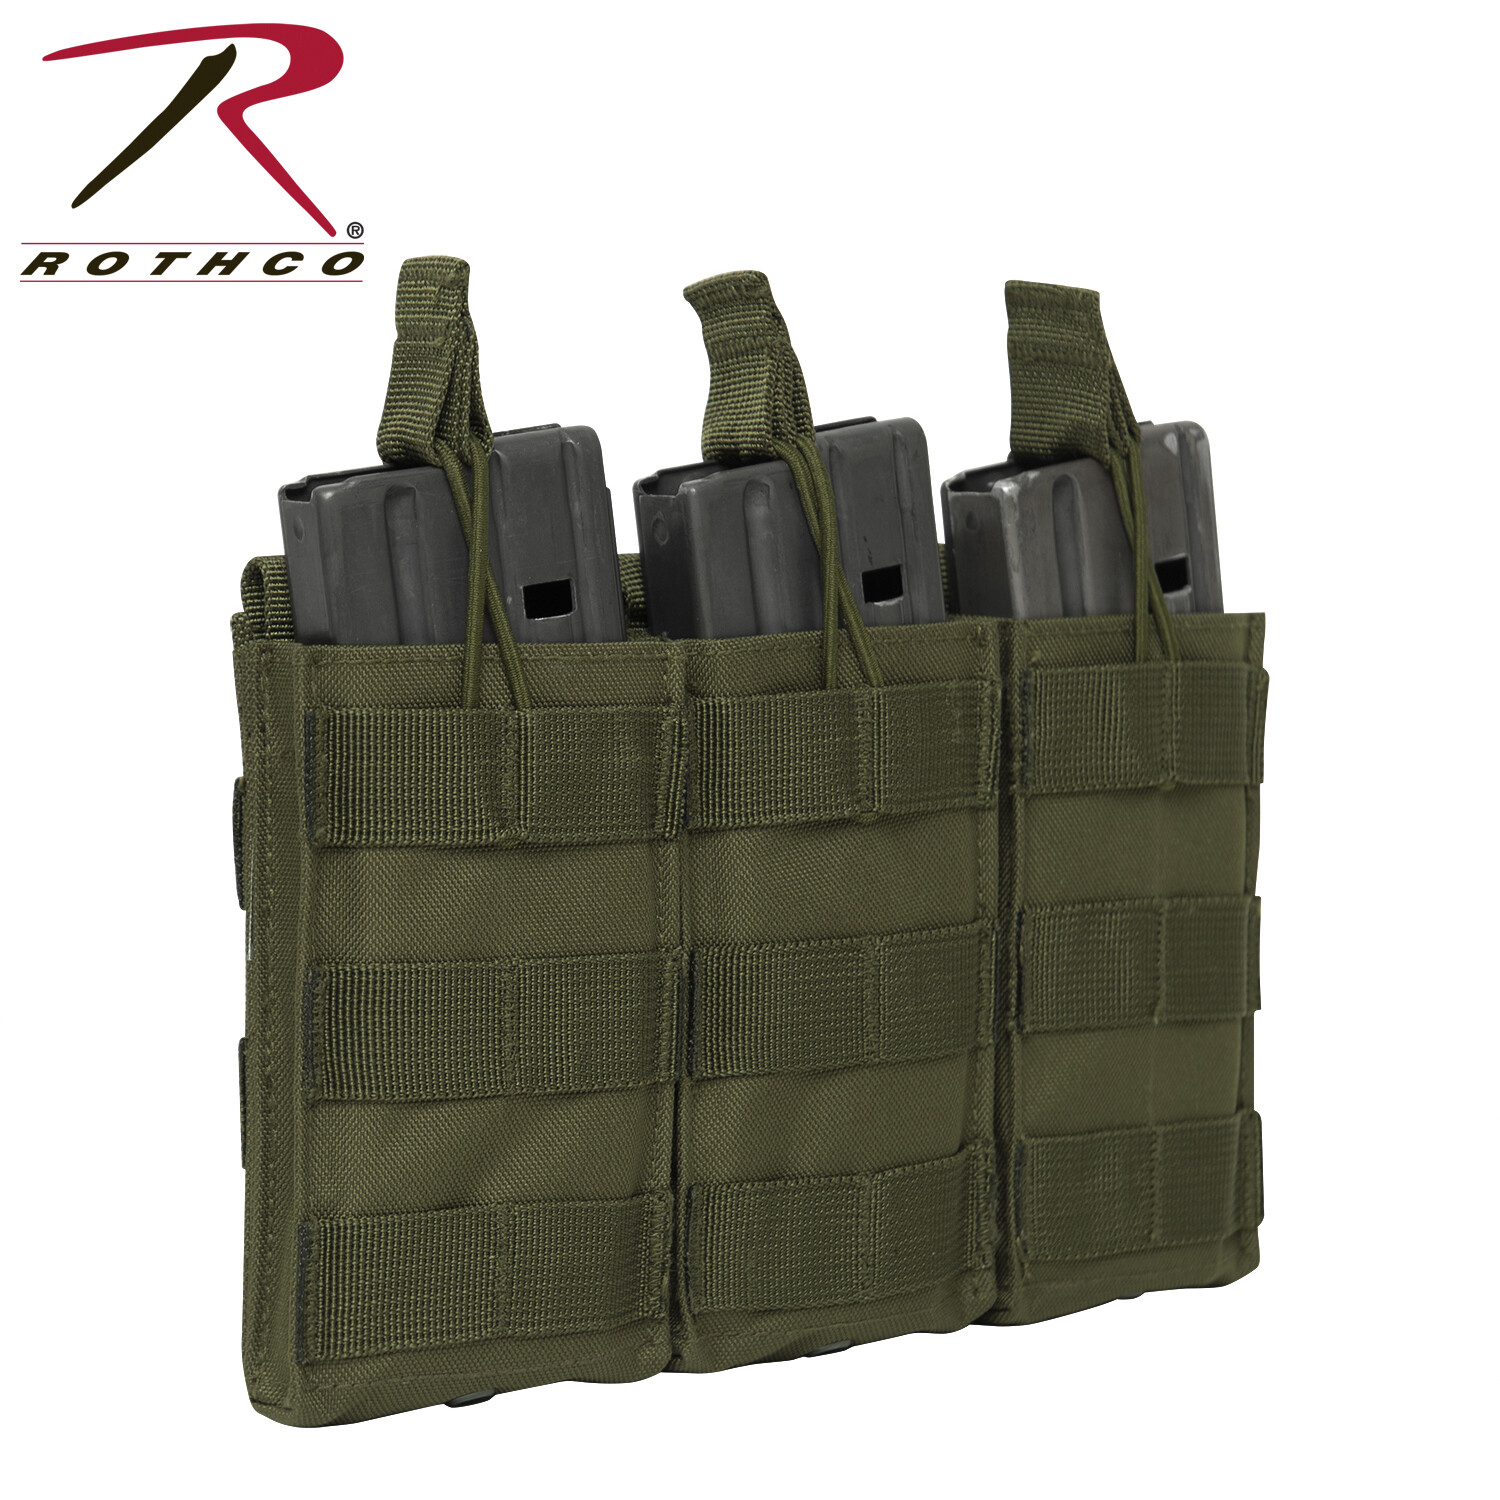 Rothco, 3140, Molle Open Top Triple Mag Pouch